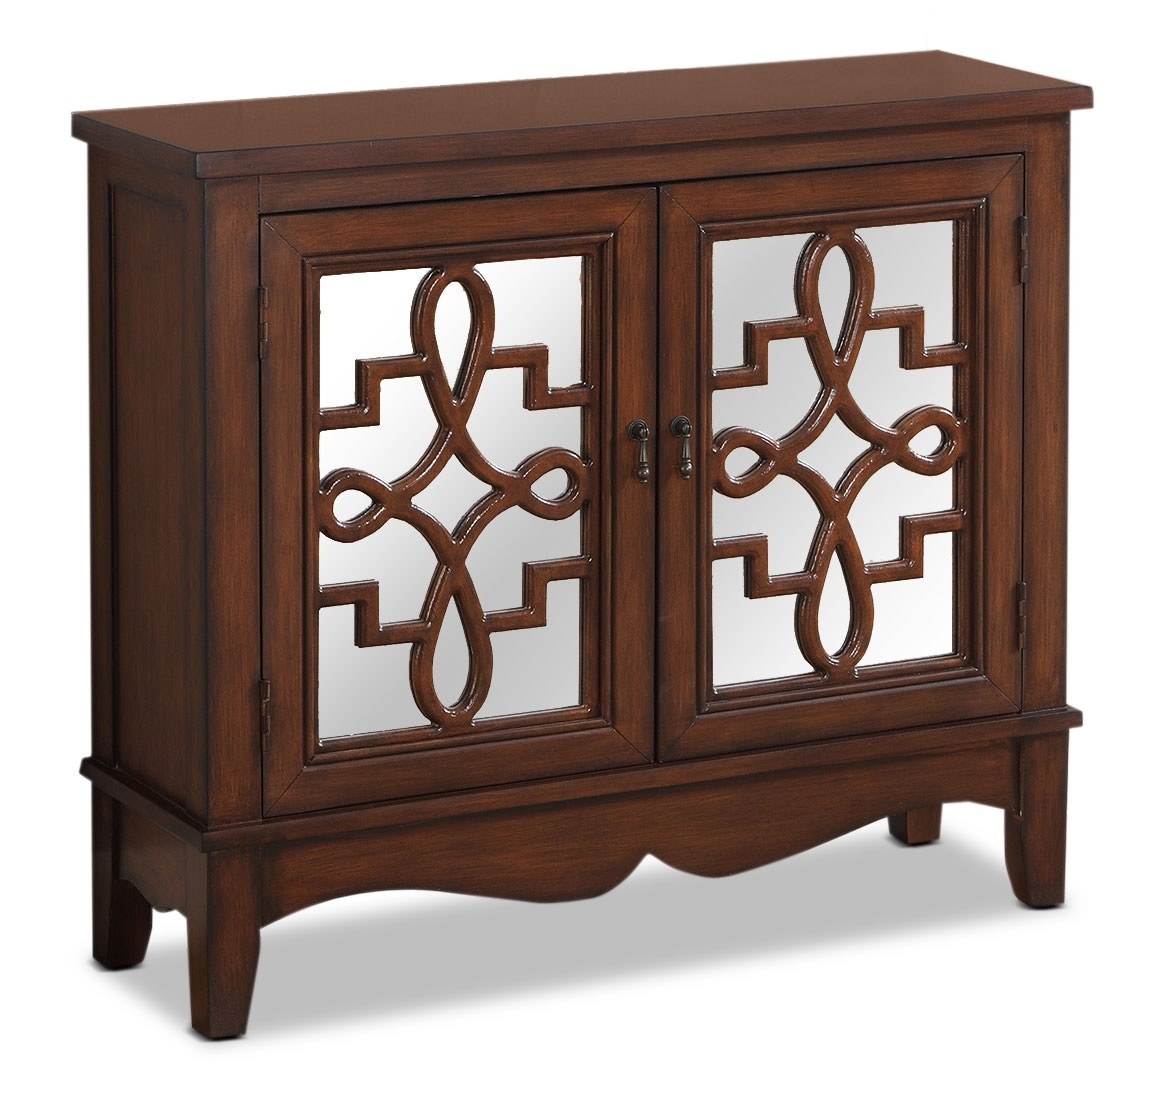 Online Only - Paloma Accent Chest